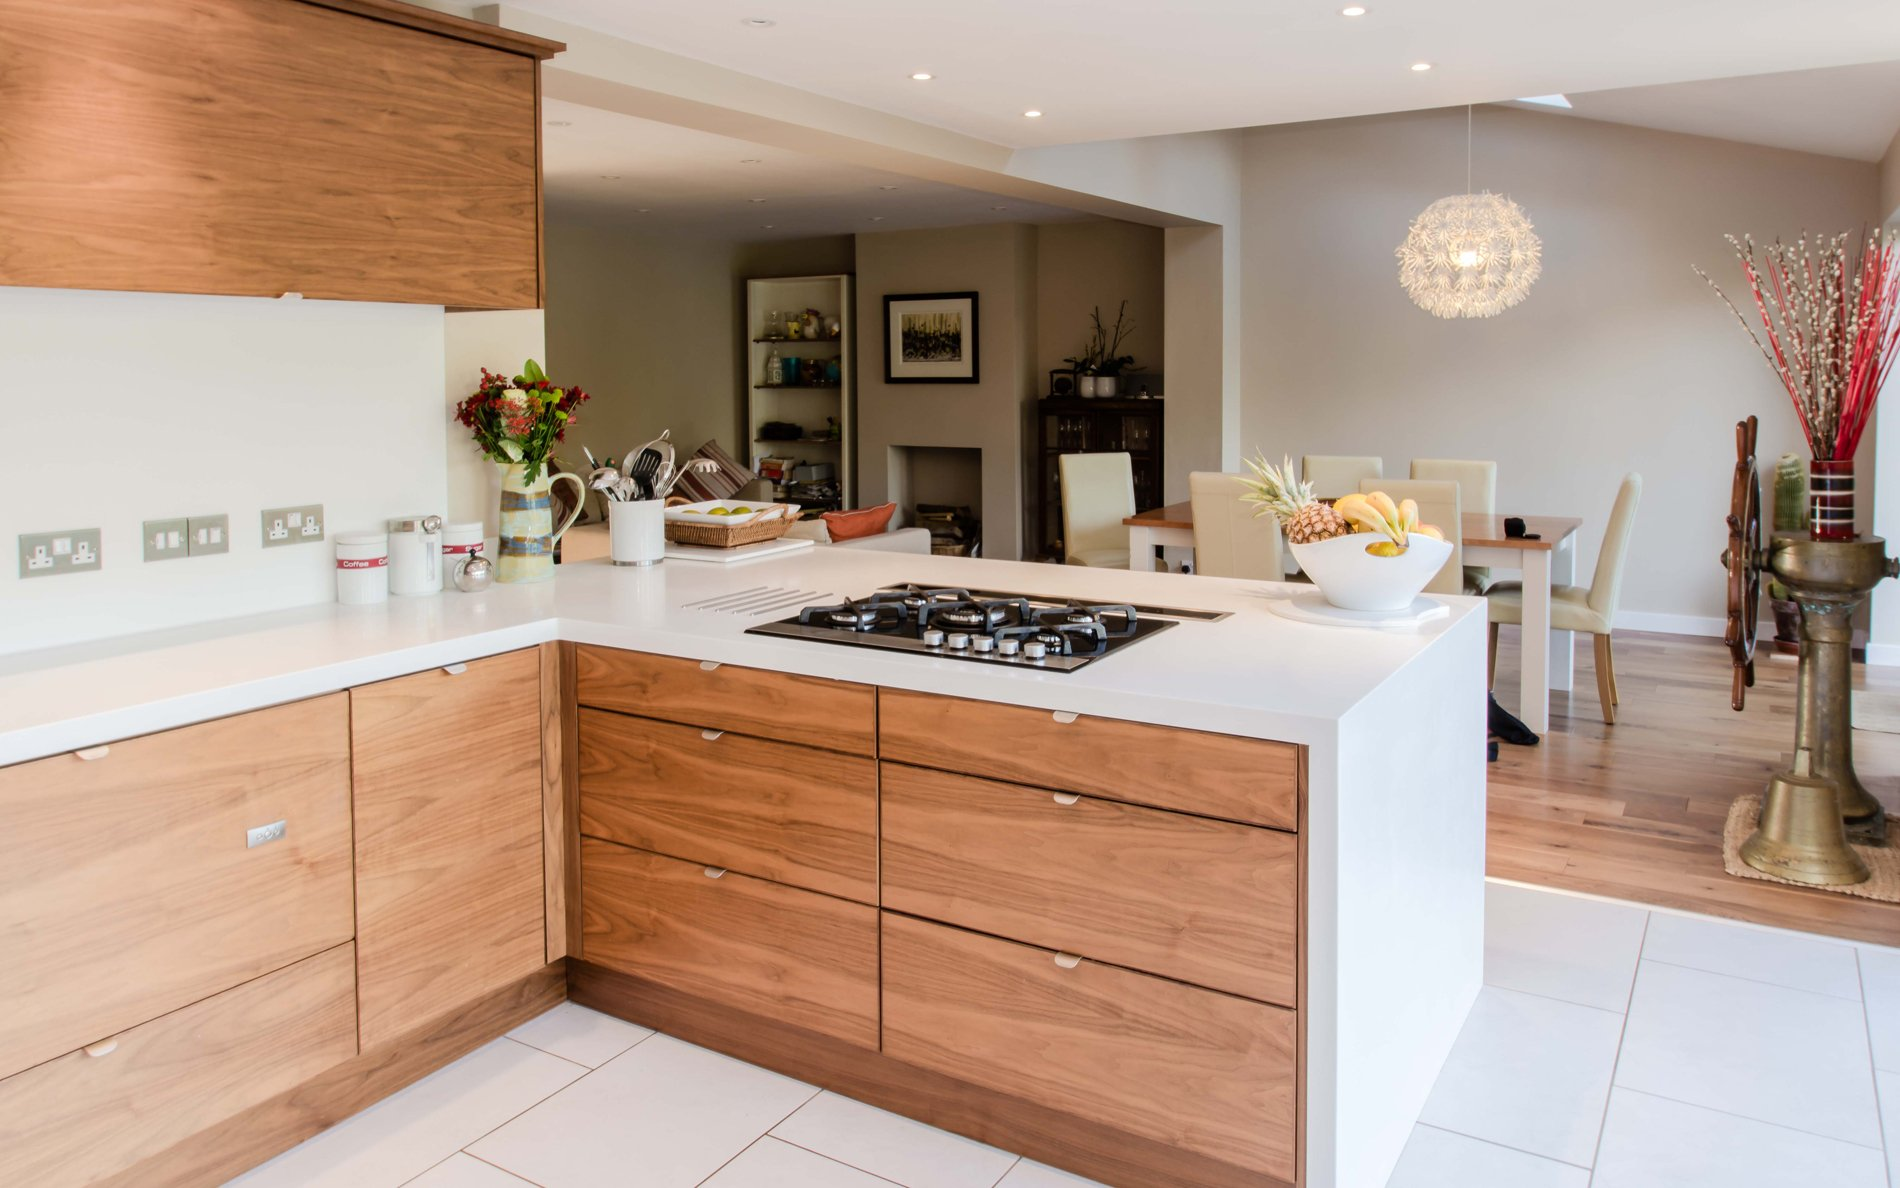 Transform bespoke handmade modern kitchen range kitchen design hertfordshire Bespoke contemporary kitchen design